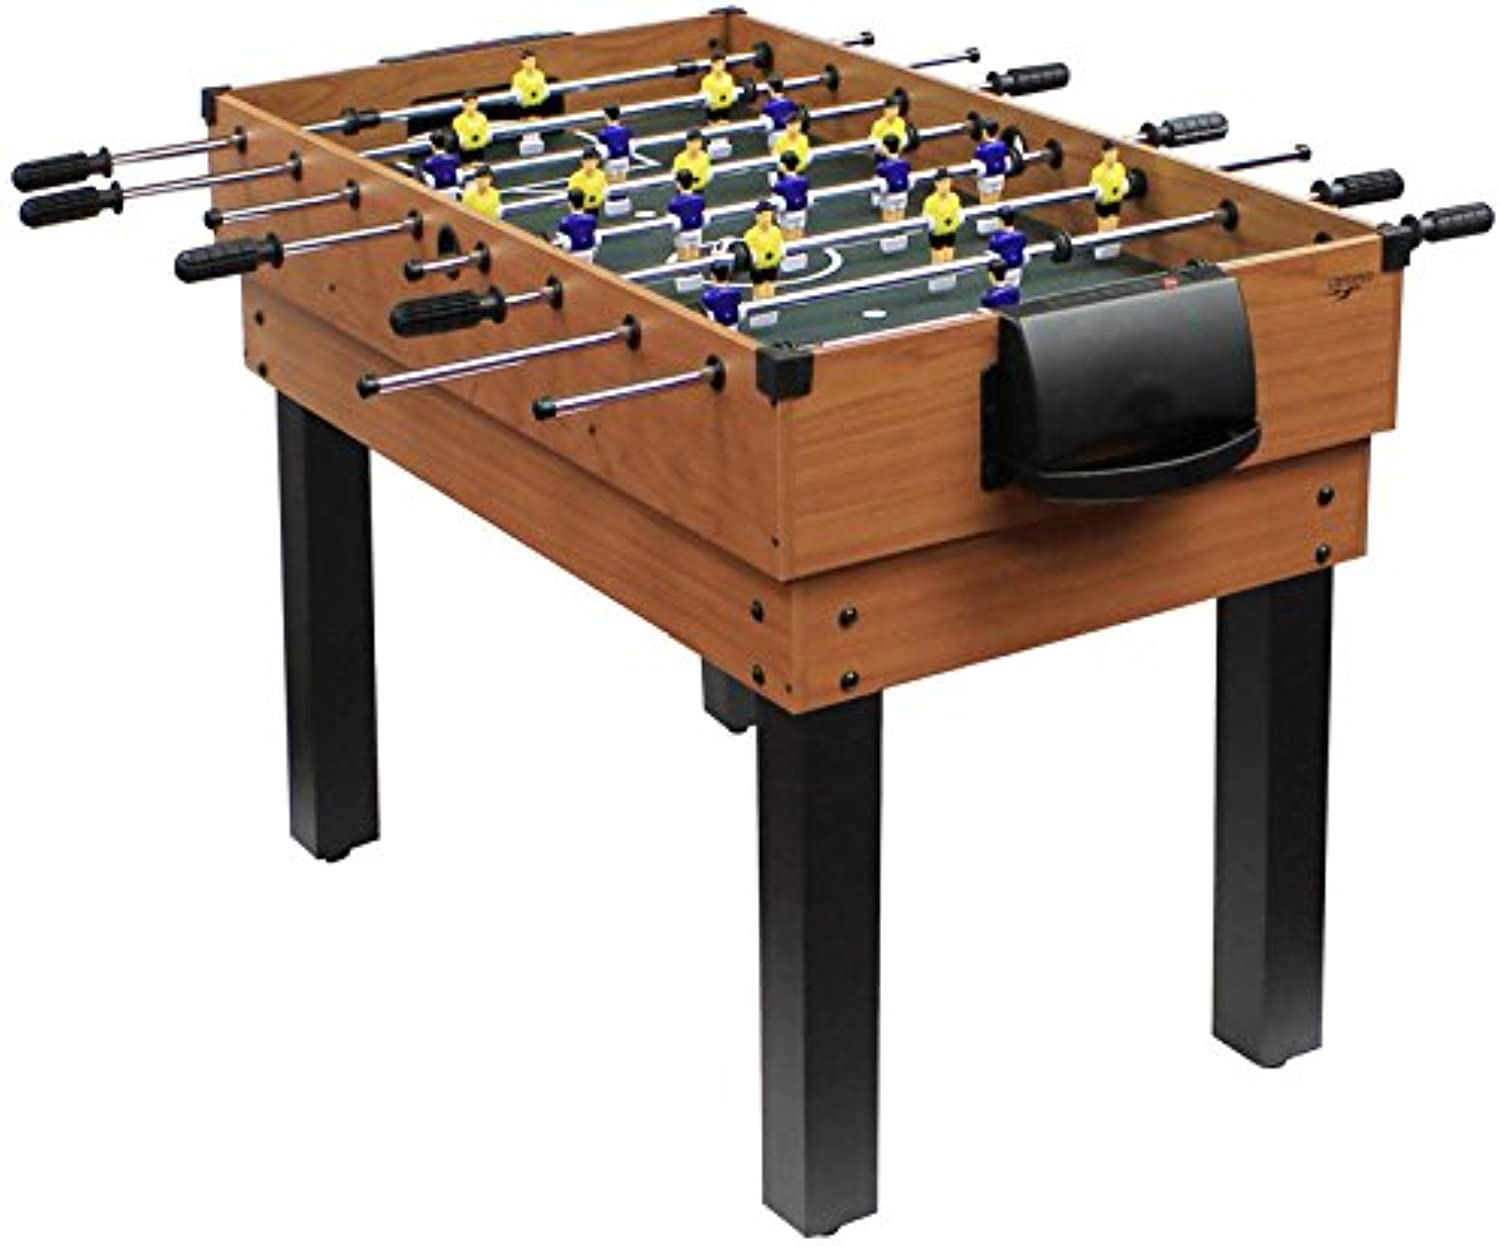 Carromco Multifunktionstischfussball Multigame Choice-XT 10-in-1 inklusive Billardkugeln, 2 Queues, 2 Kickerblle, 06010